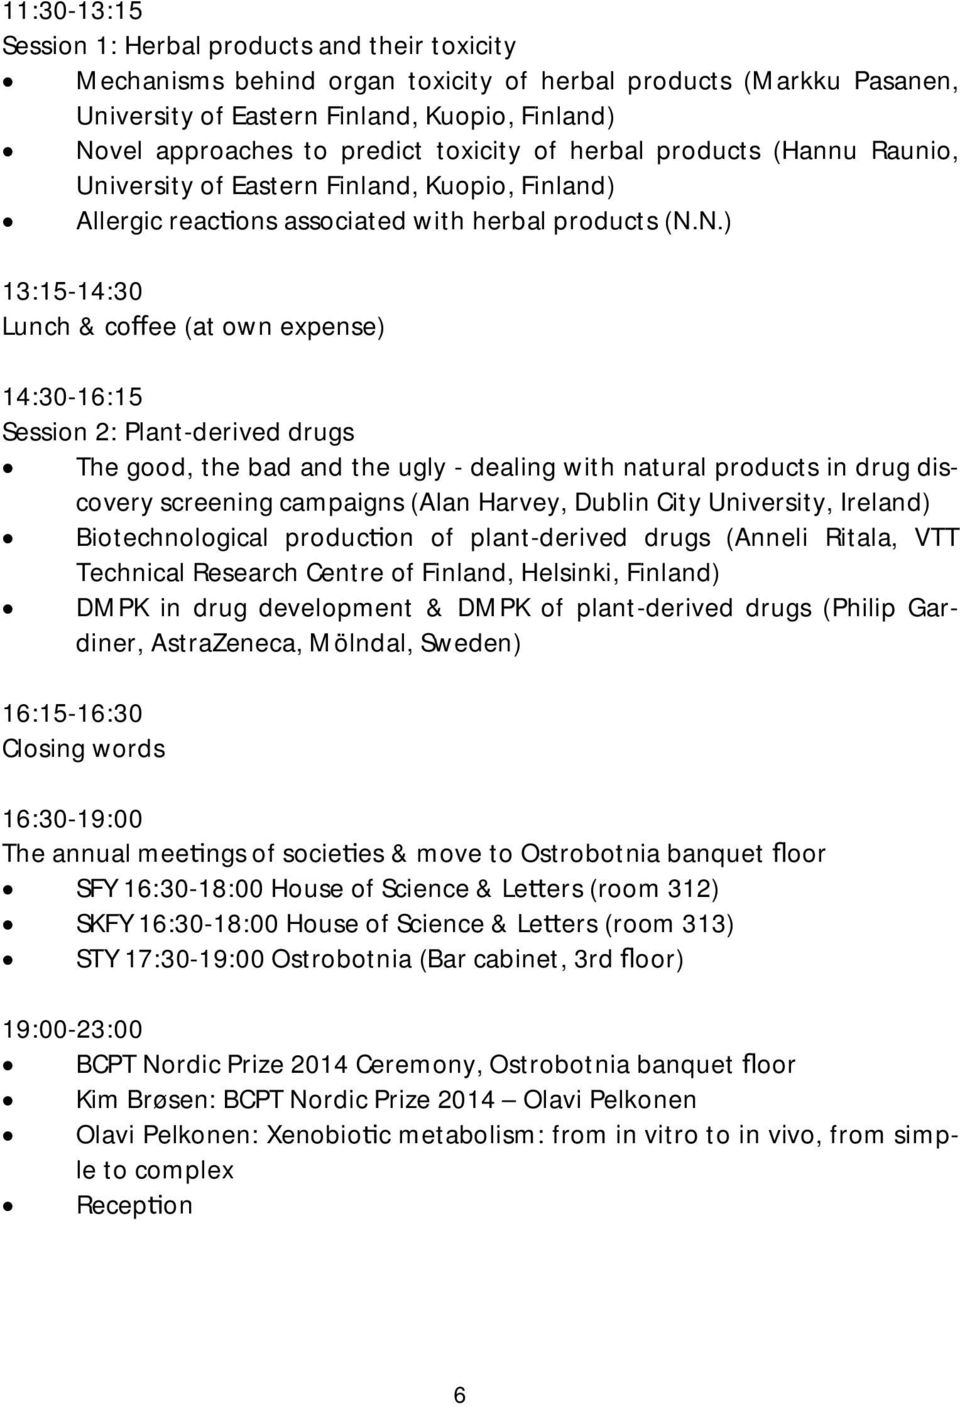 N.) 13:15-14:30 Lunch & co ee (at own expense) 14:30-16:15 Session 2: Plant-derived drugs The good, the bad and the ugly - dealing with natural products in drug discovery screening campaigns (Alan